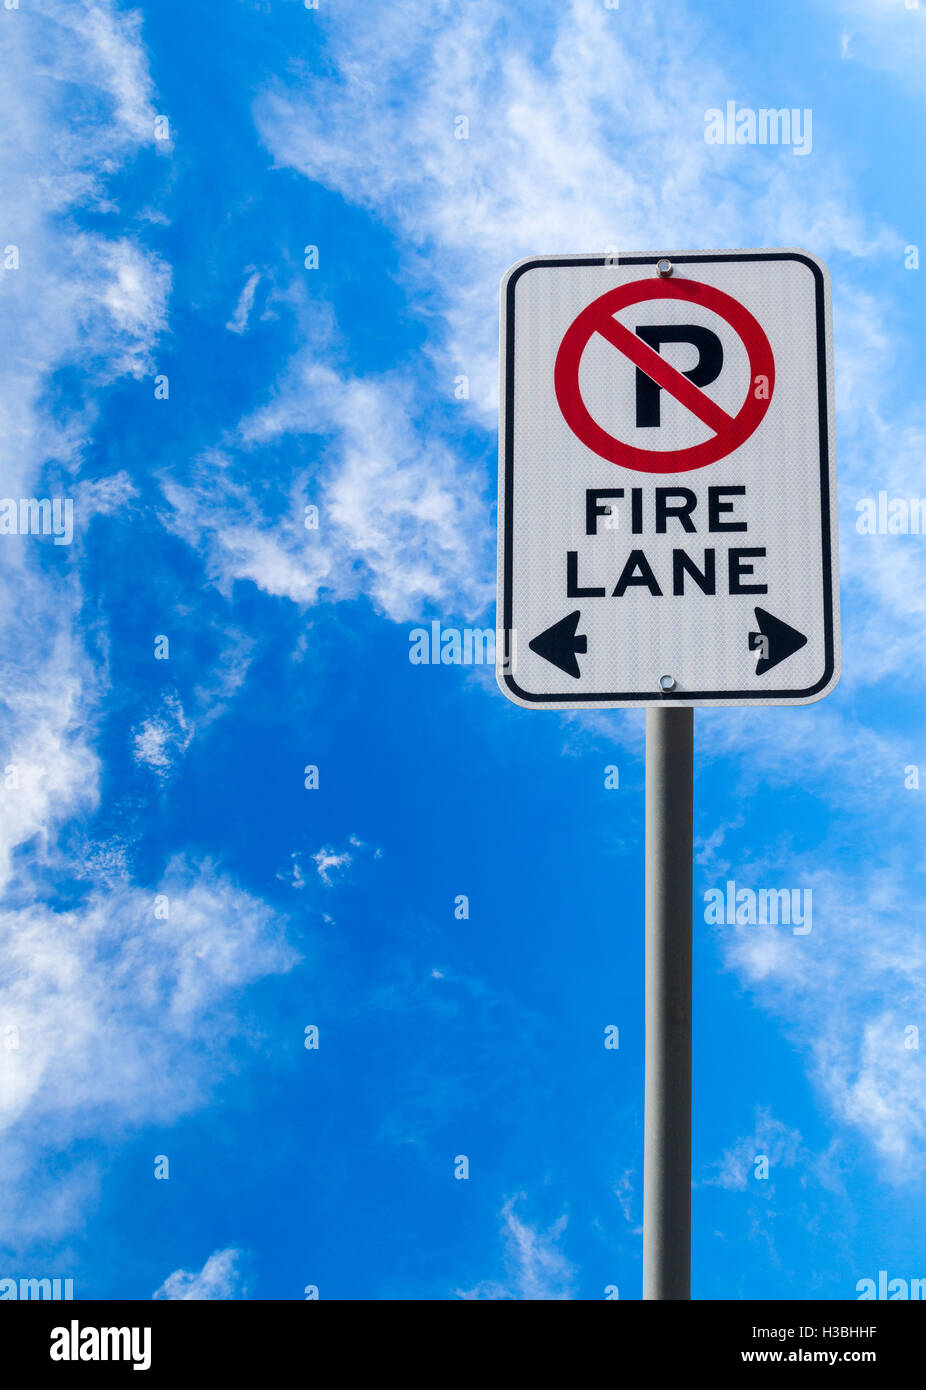 A Fire Lane No Parking sign against a blue cloudy sky with copy space. Vertical orientation.Stock Photo